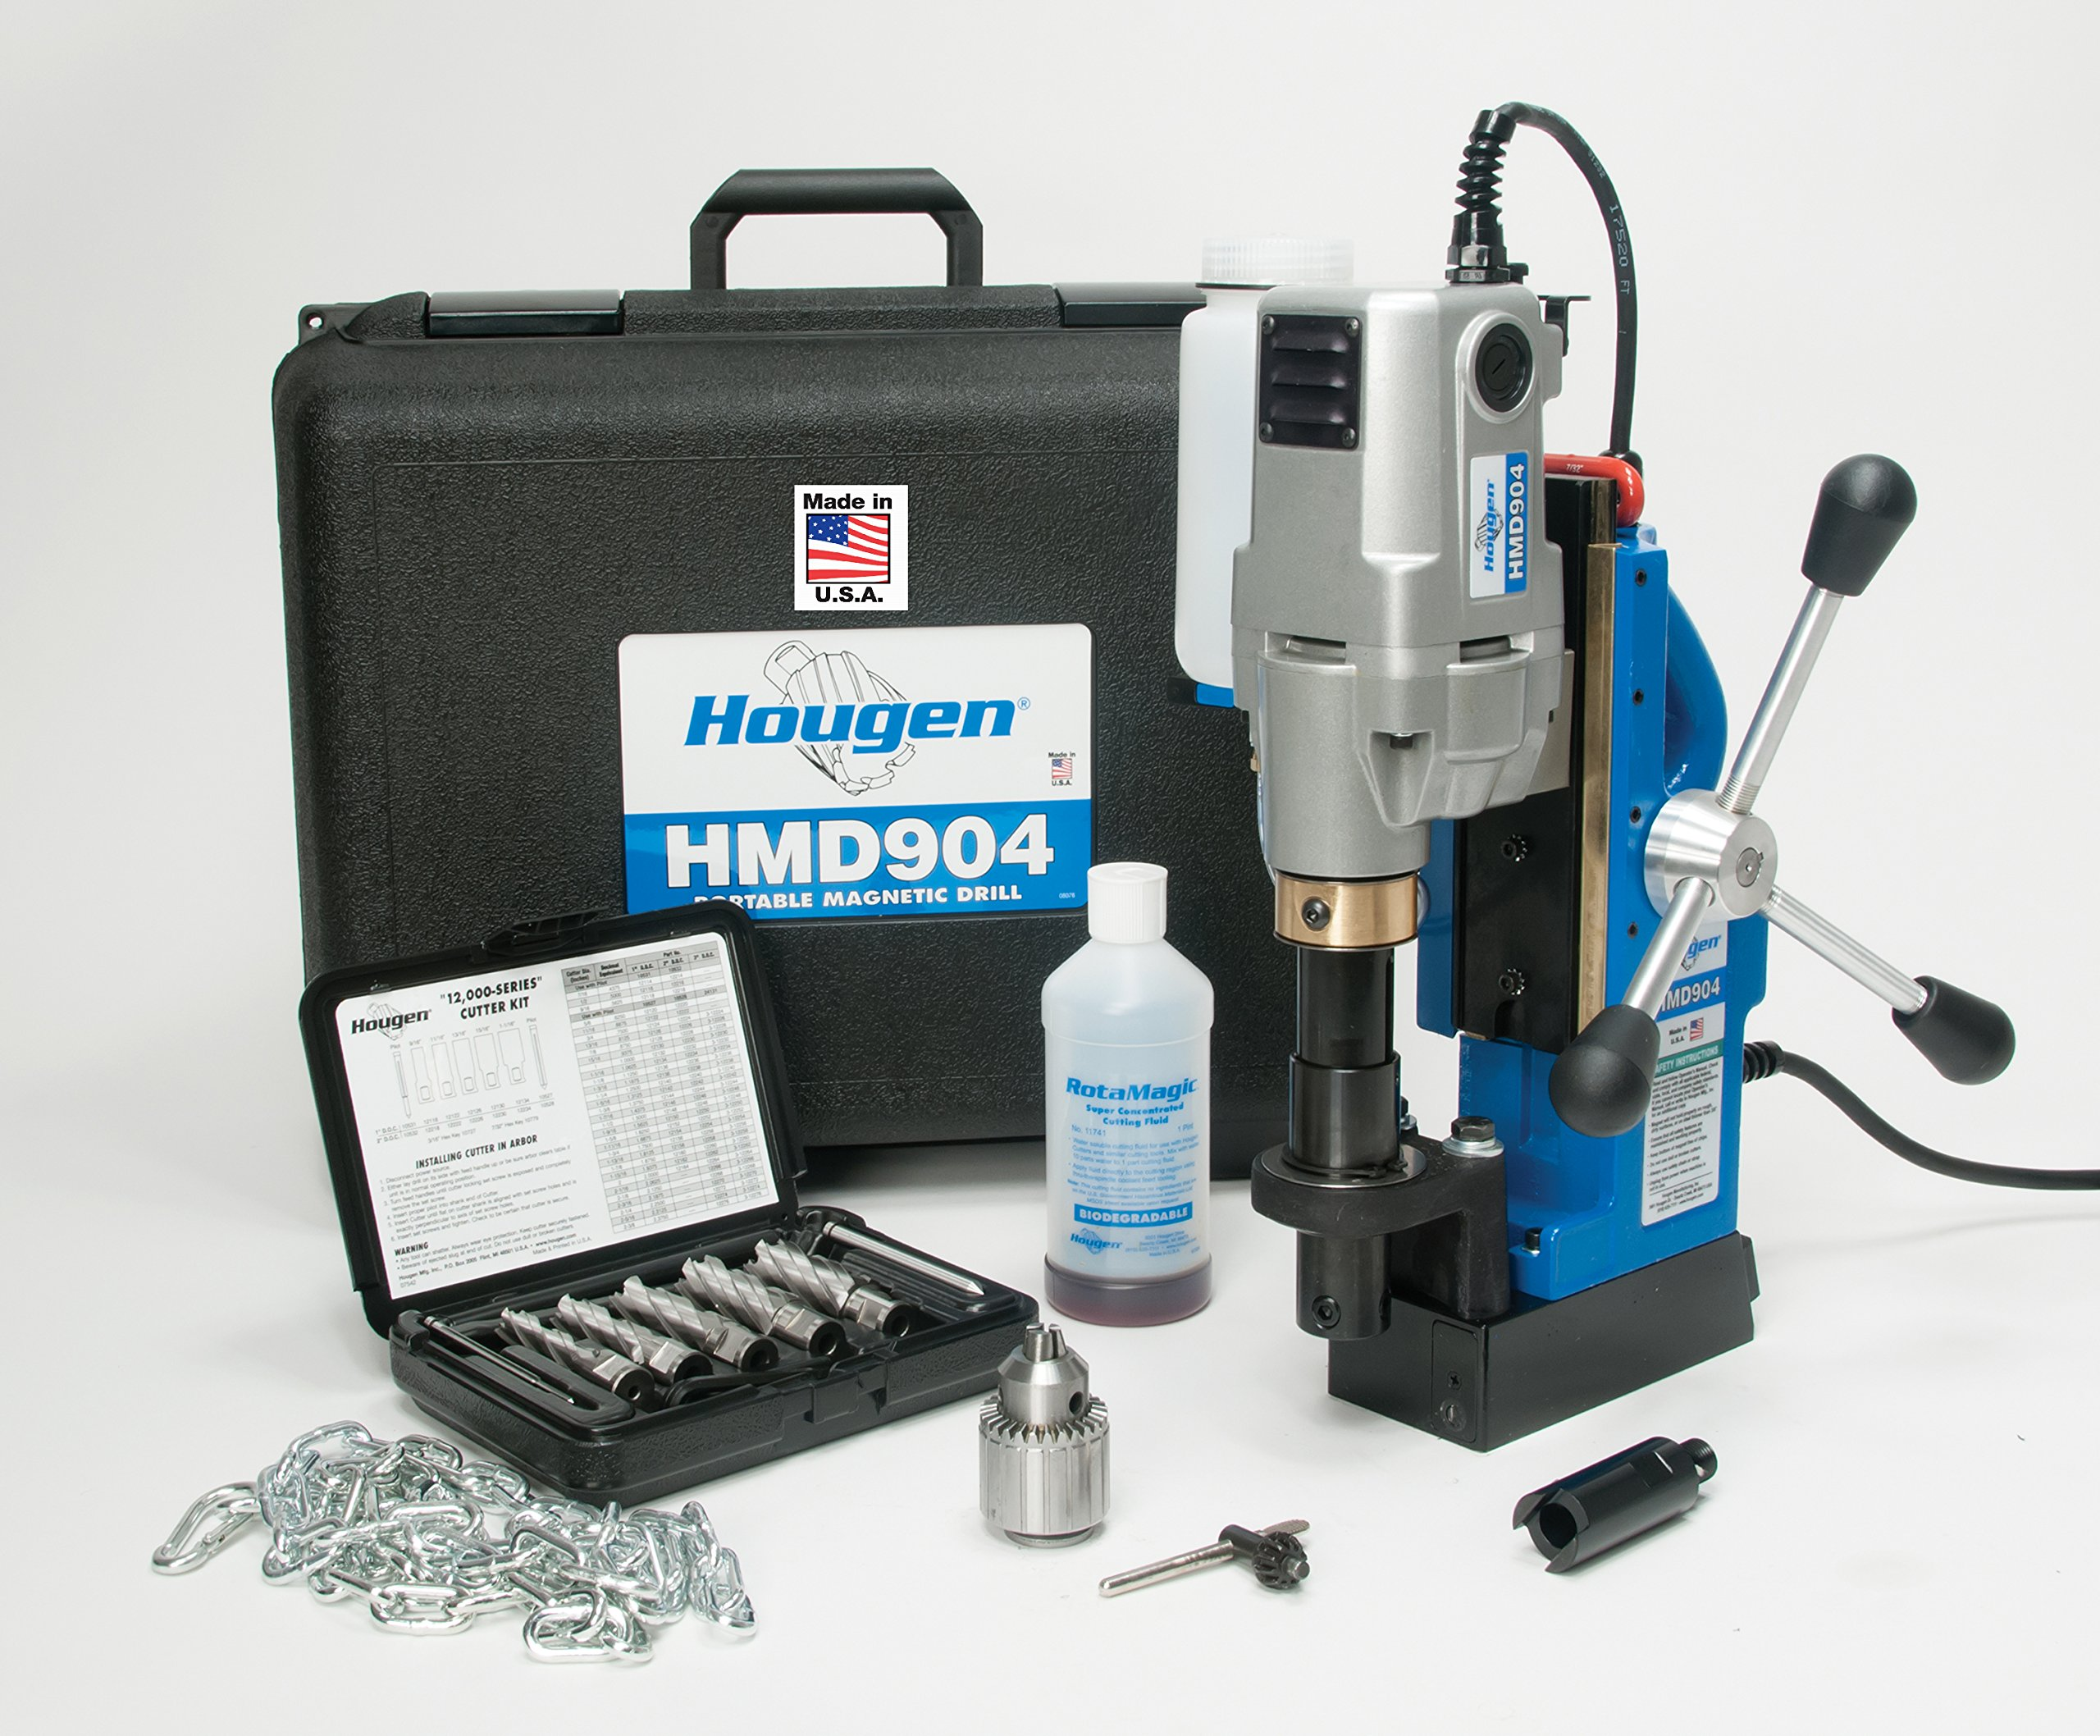 Hougen HMD904 115-Volt Magnetic Drill w/coolant bottle plus 1/2'' drill chuck, adapter and 12002 rotabroach cutter kit